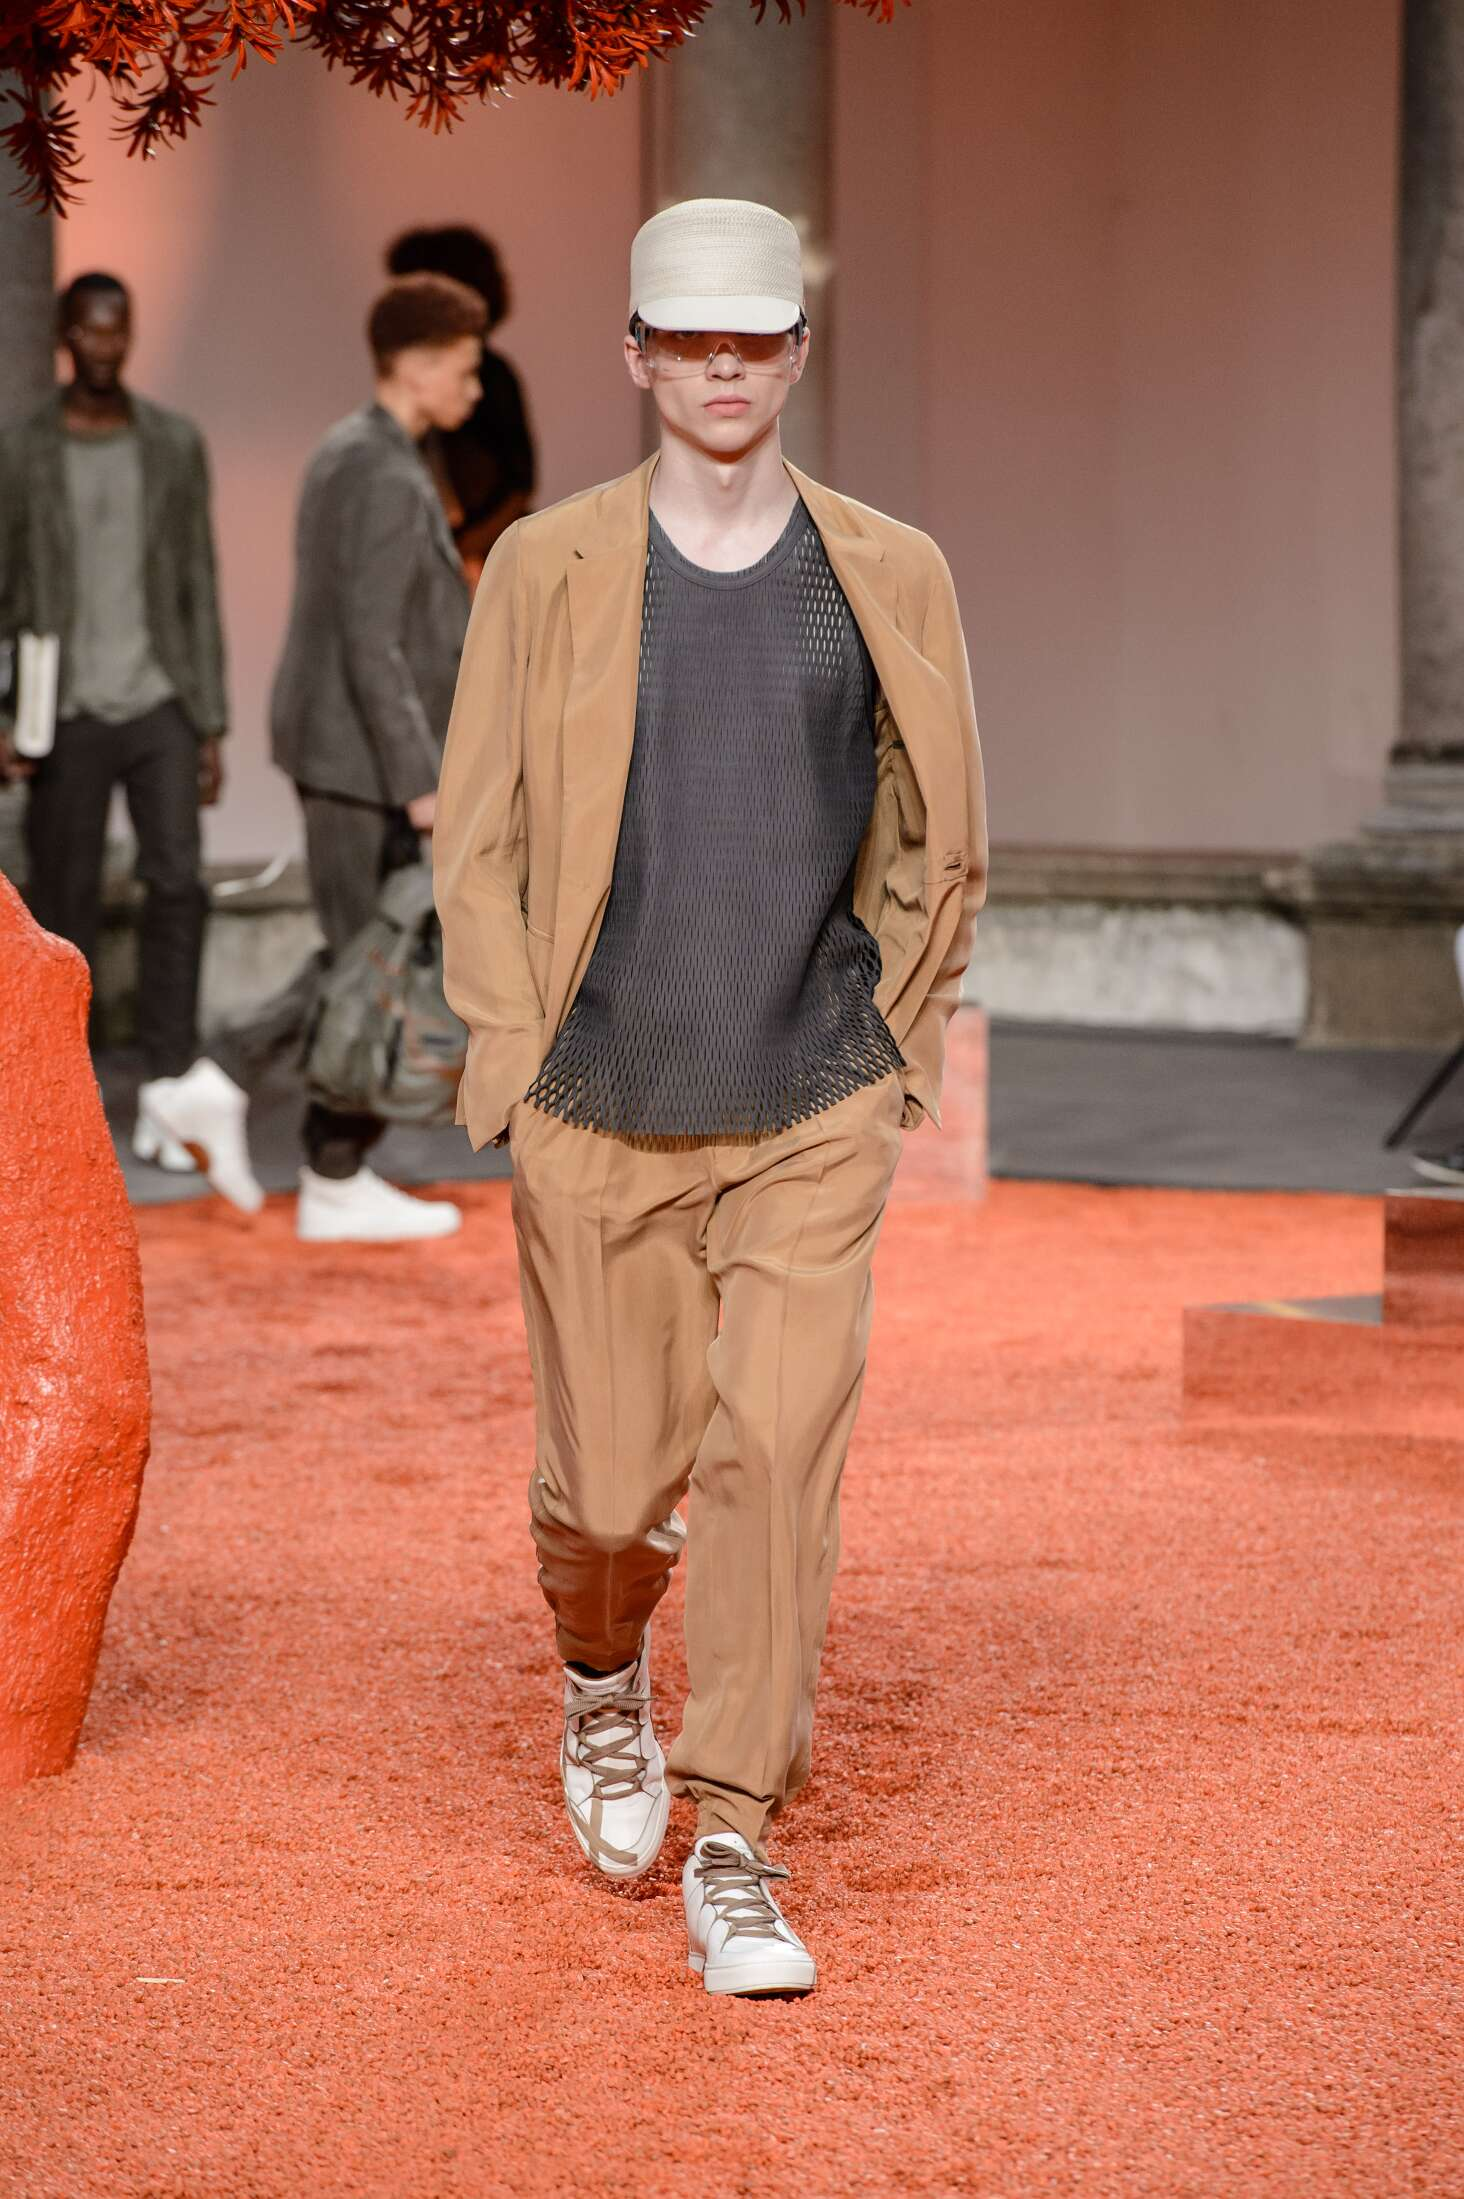 2018 Catwalk Ermenegildo Zegna Couture Man Fashion Show Summer